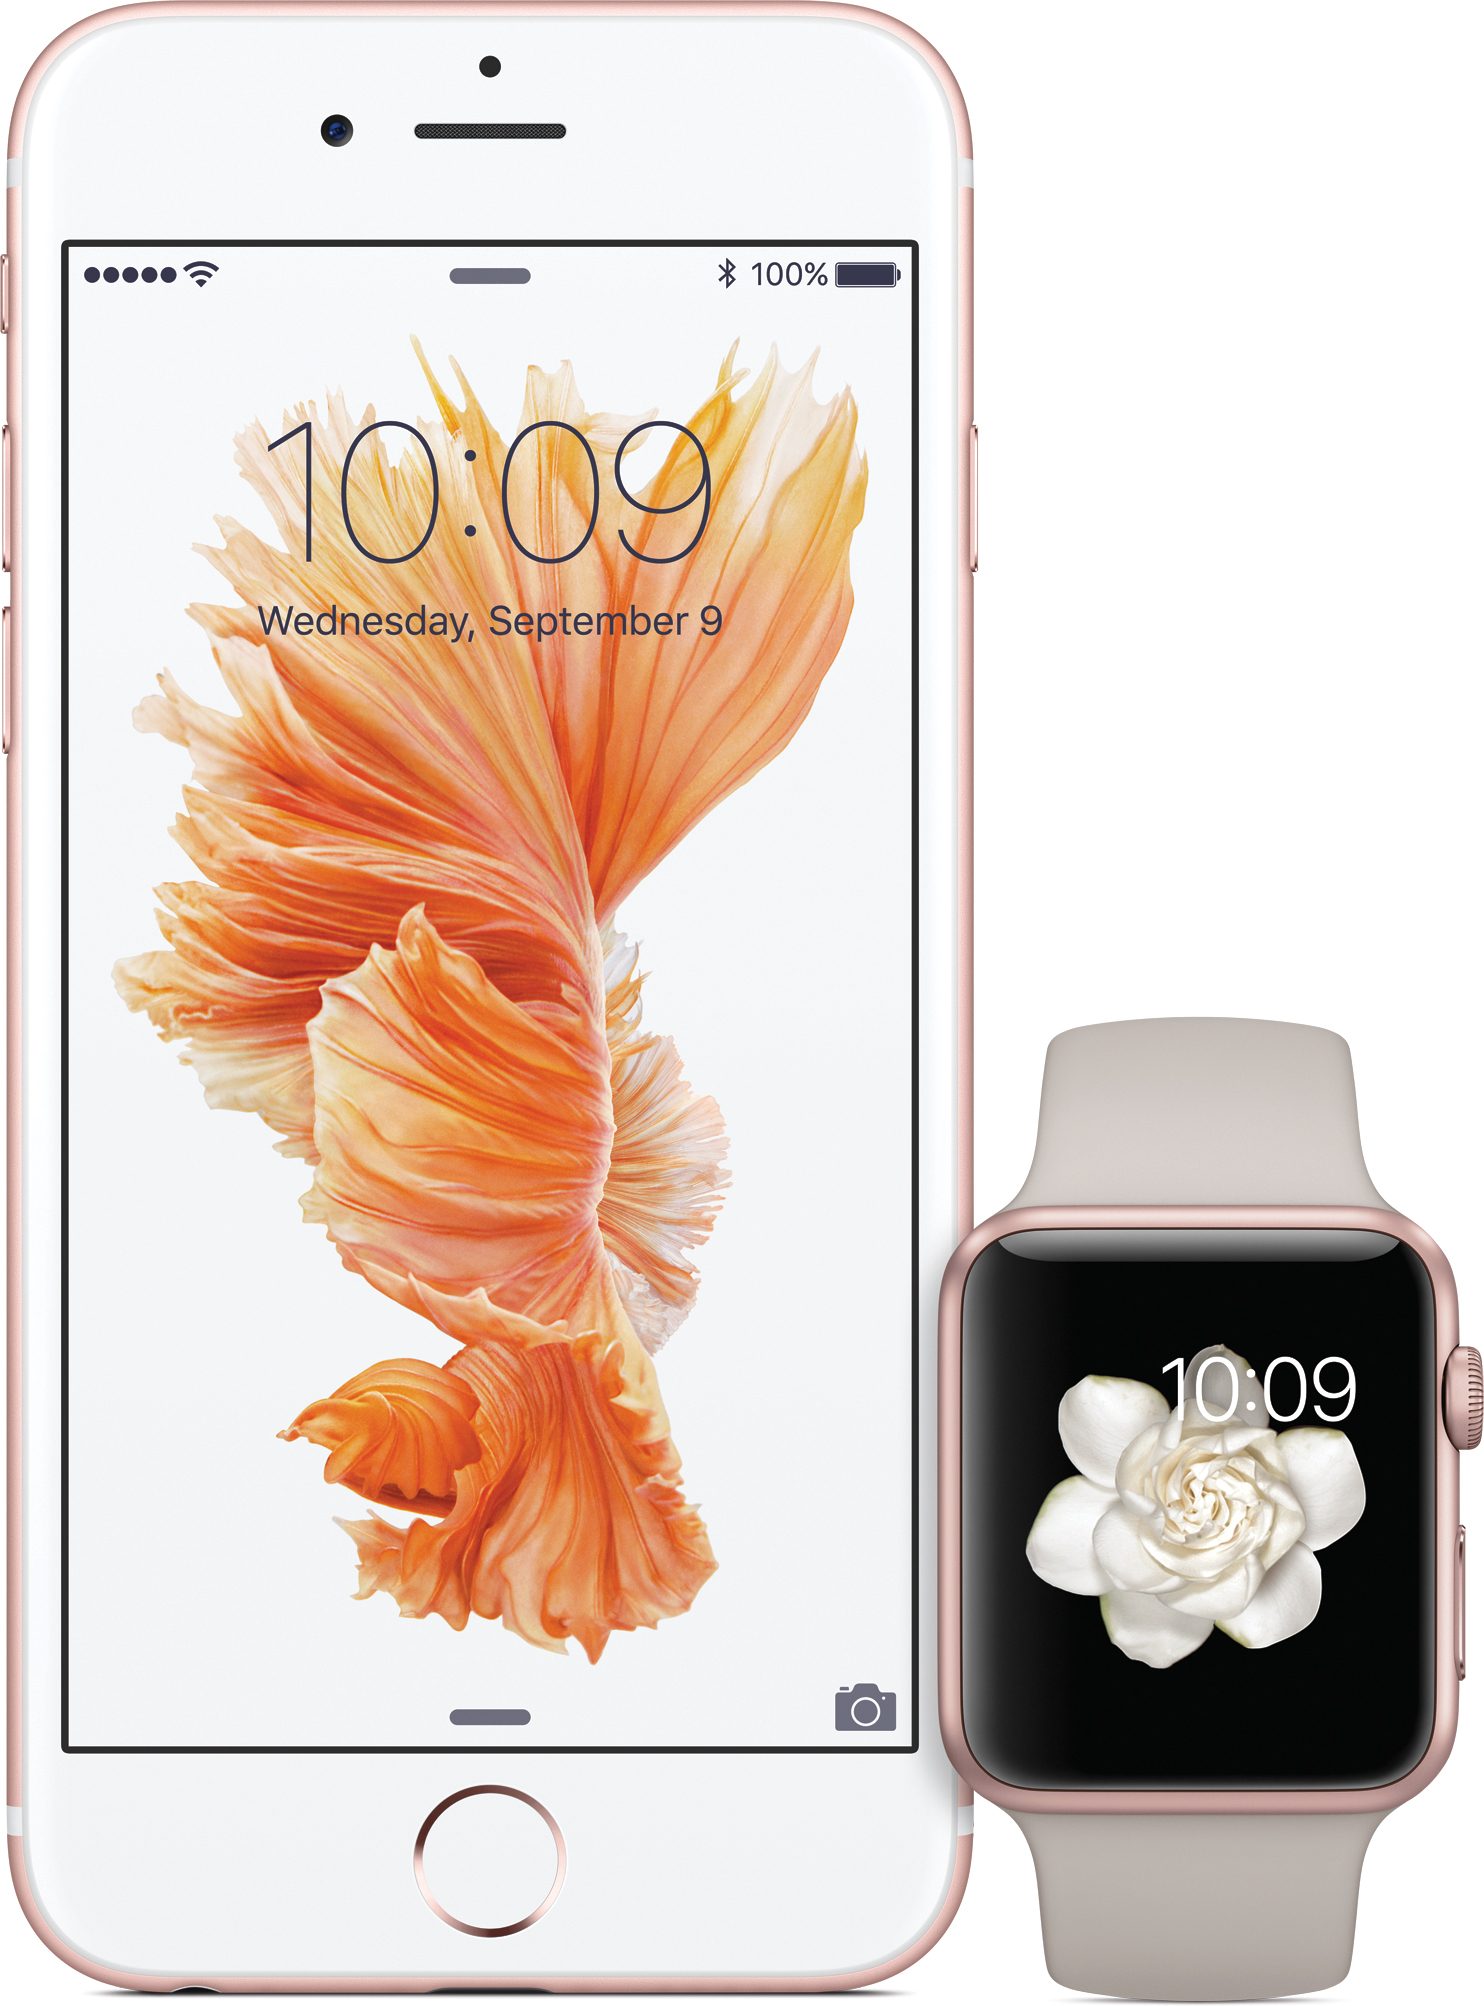 iPhone 6s com Apple Watch Sport nas cores ouro rosé